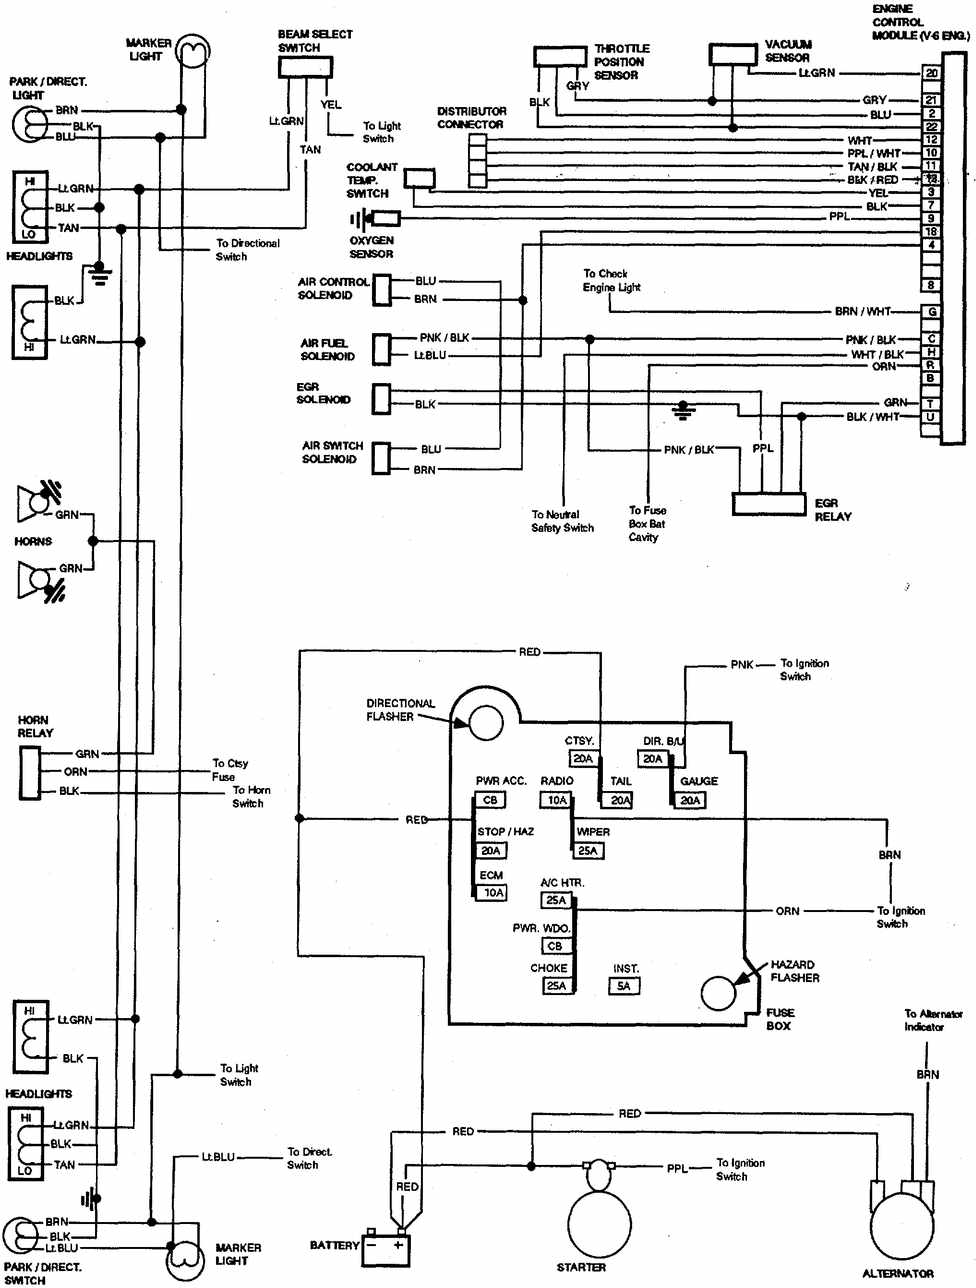 wiring diagram 06 chevy silverado